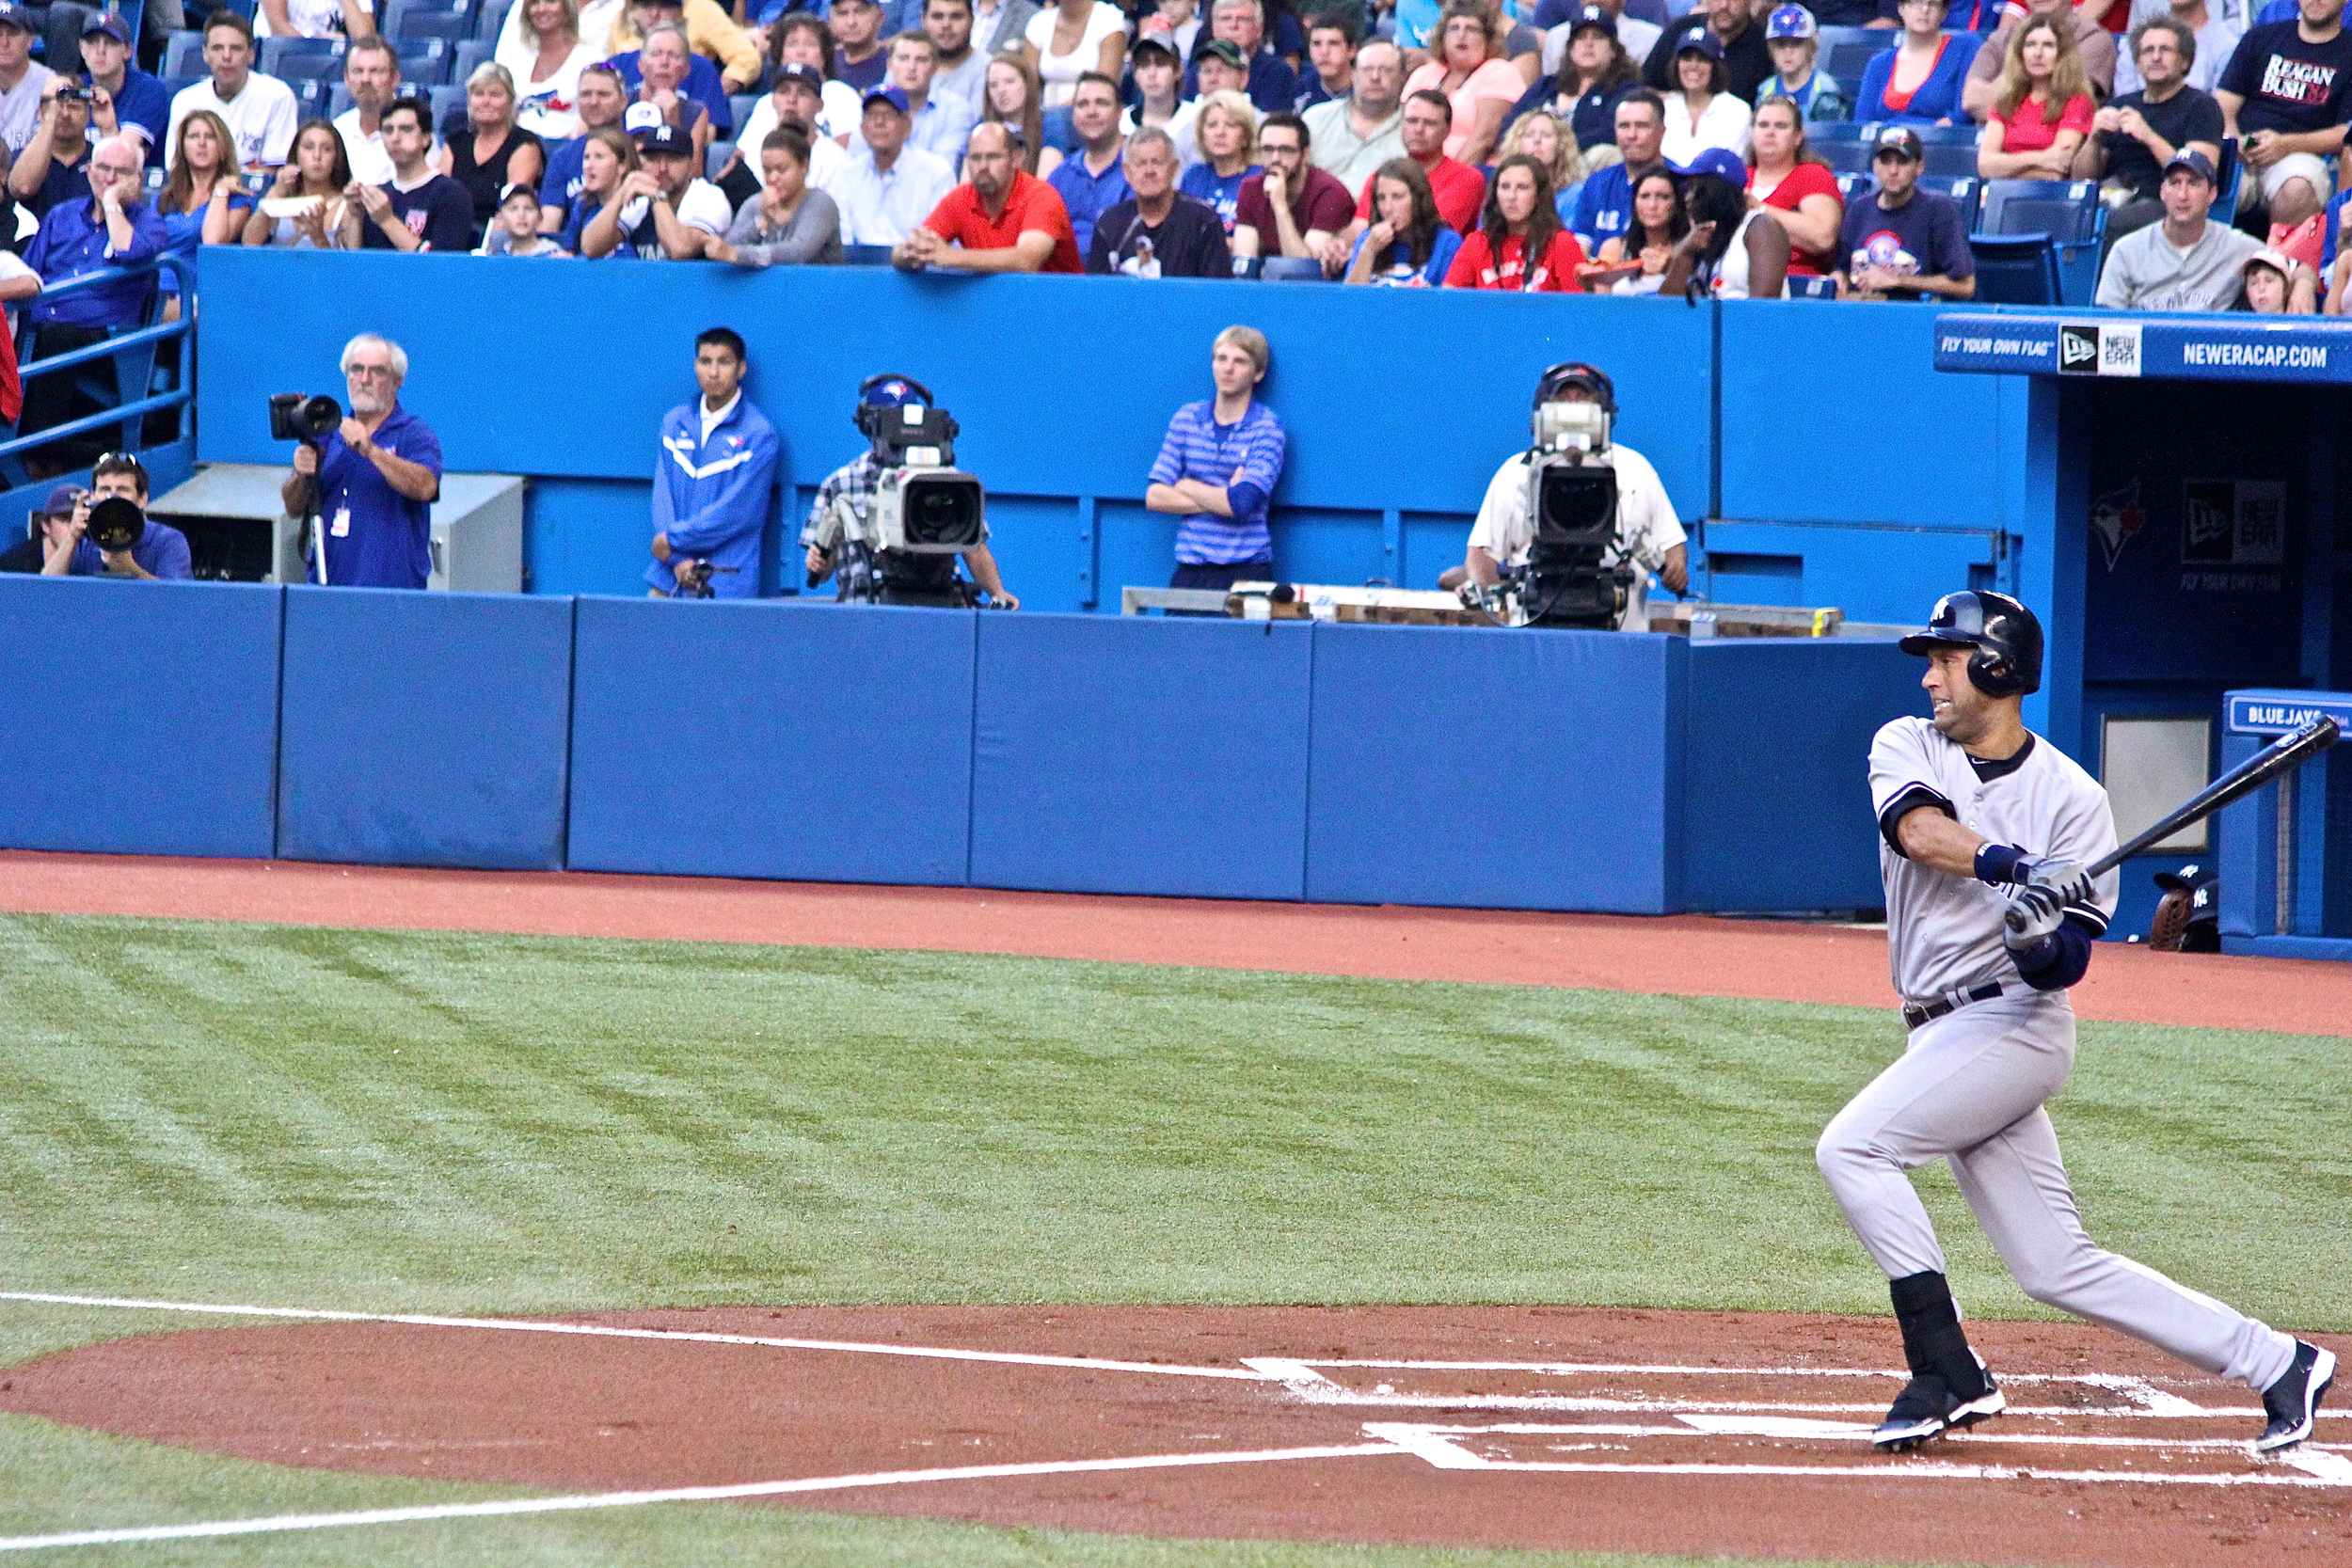 Derek Jeter's first at bat